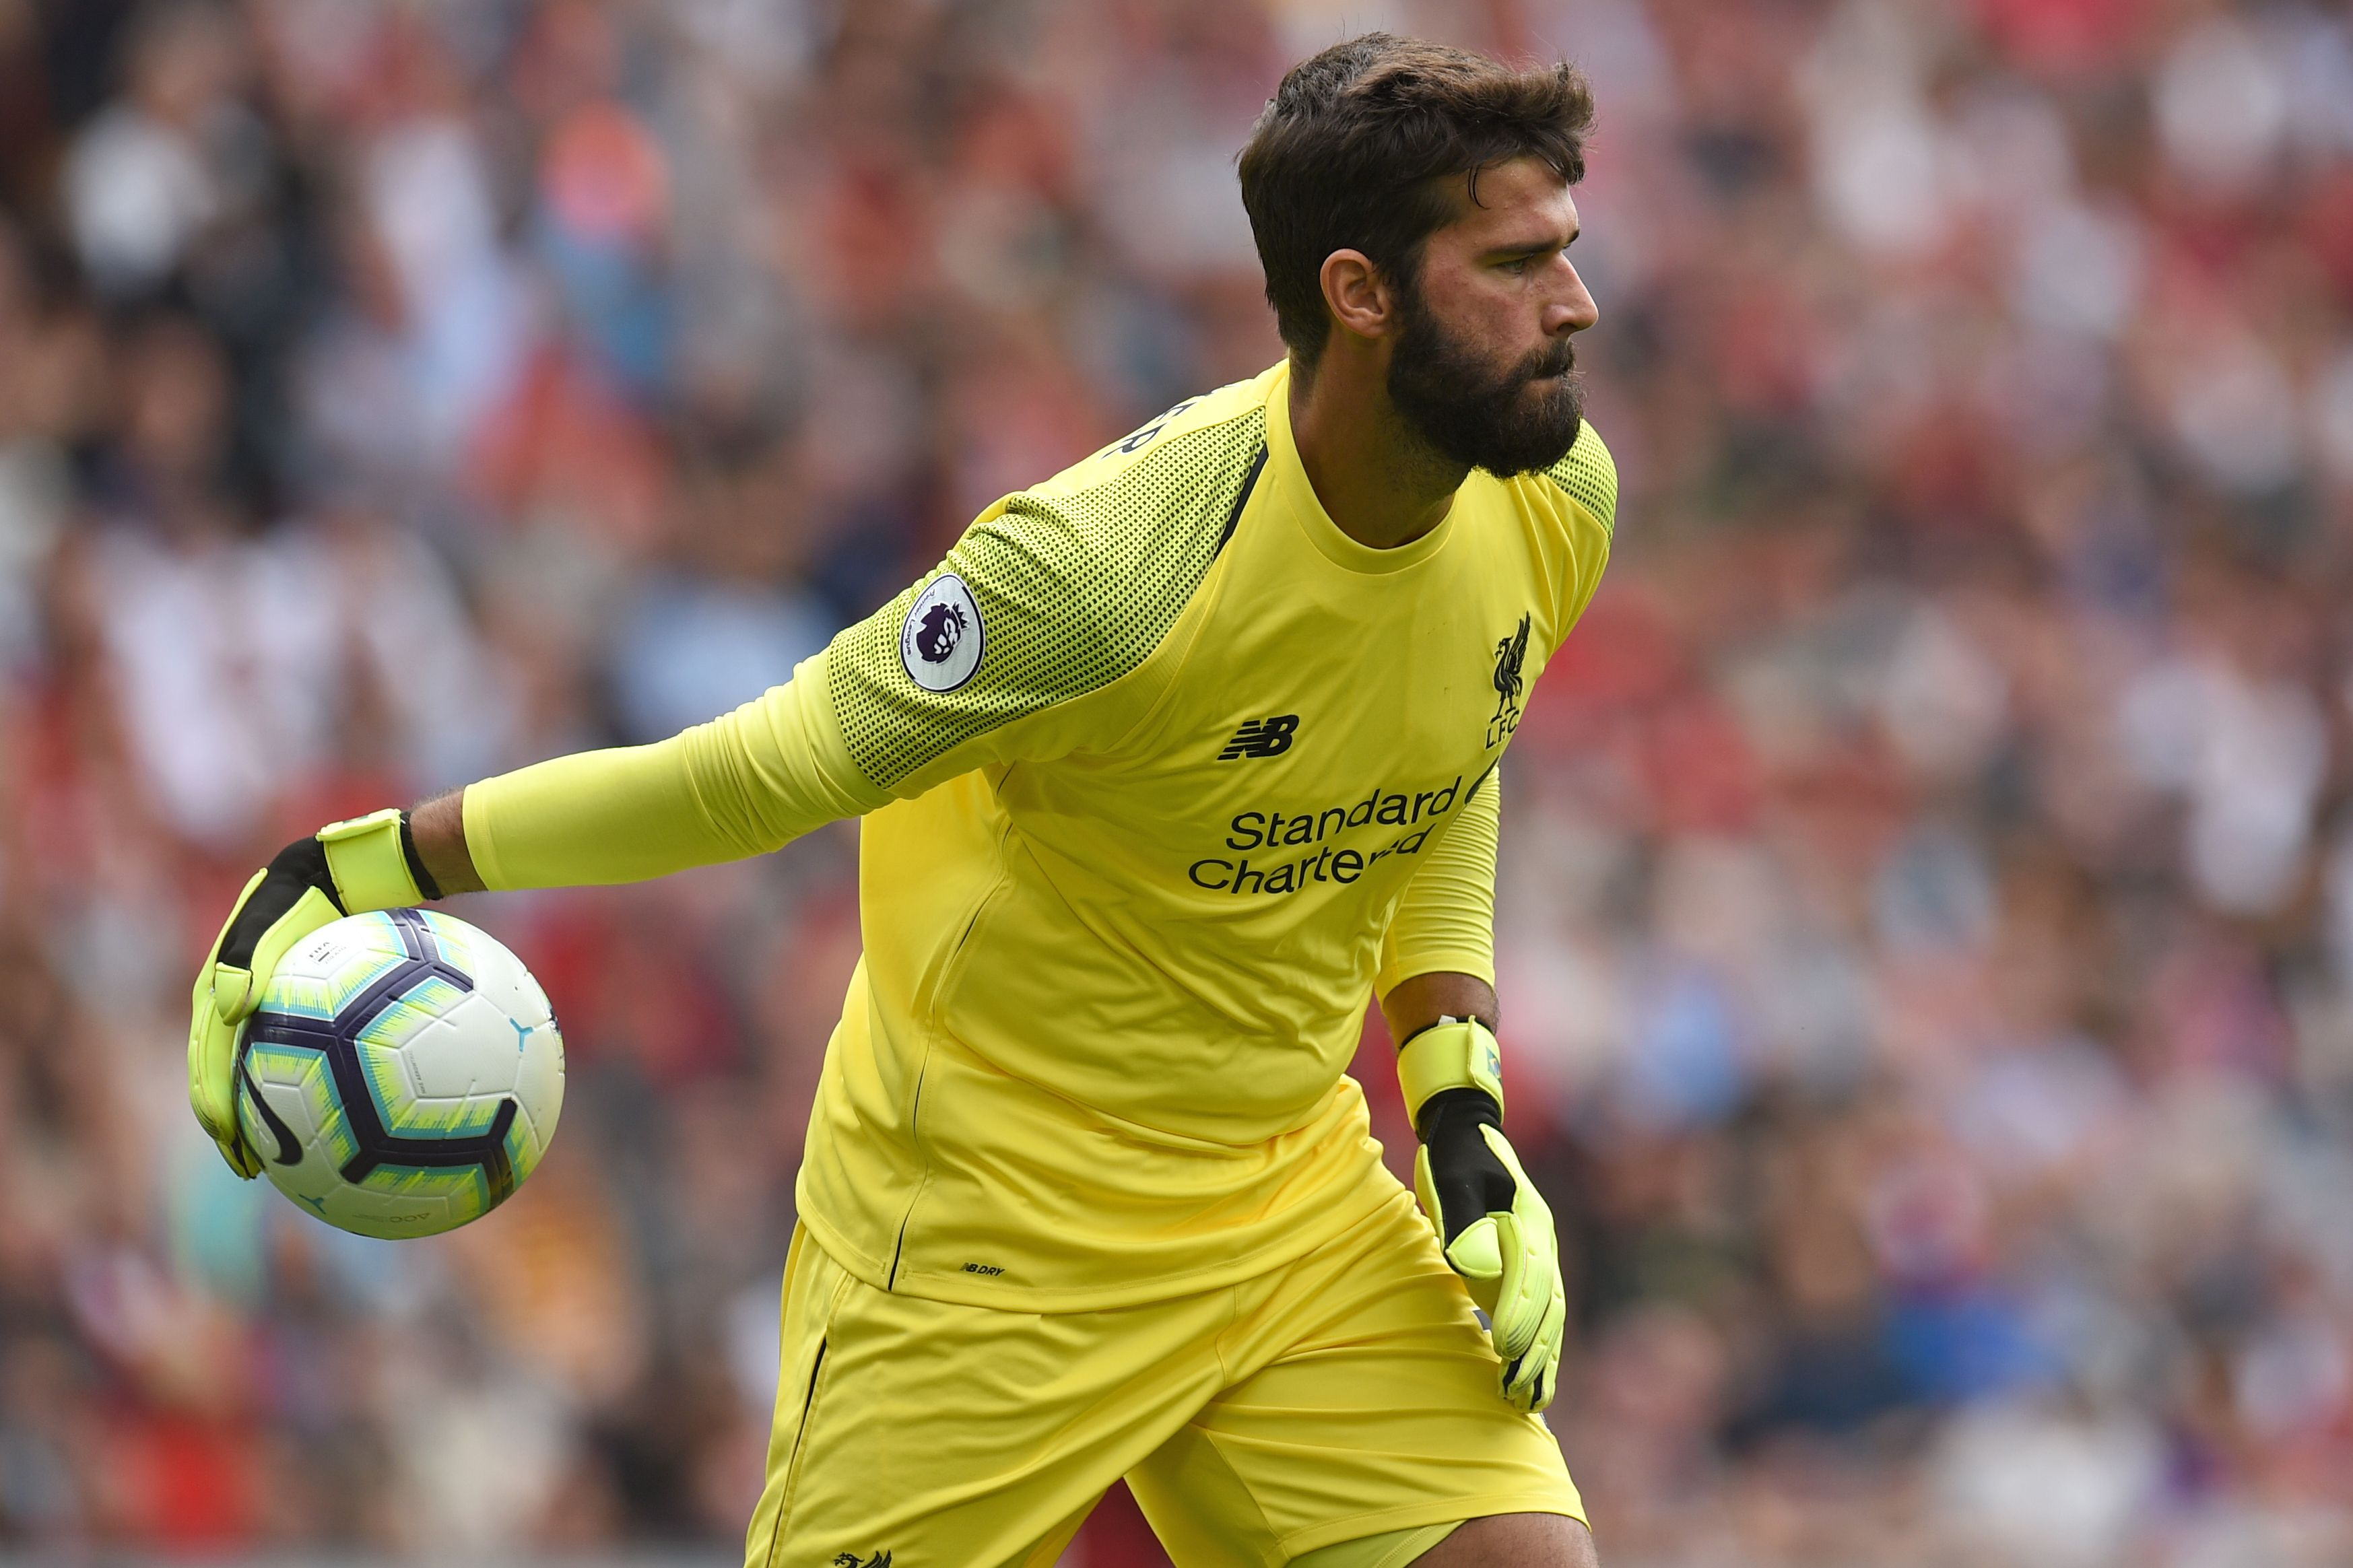 Klopp salutes Alisson as Karius faces Liverpool exit